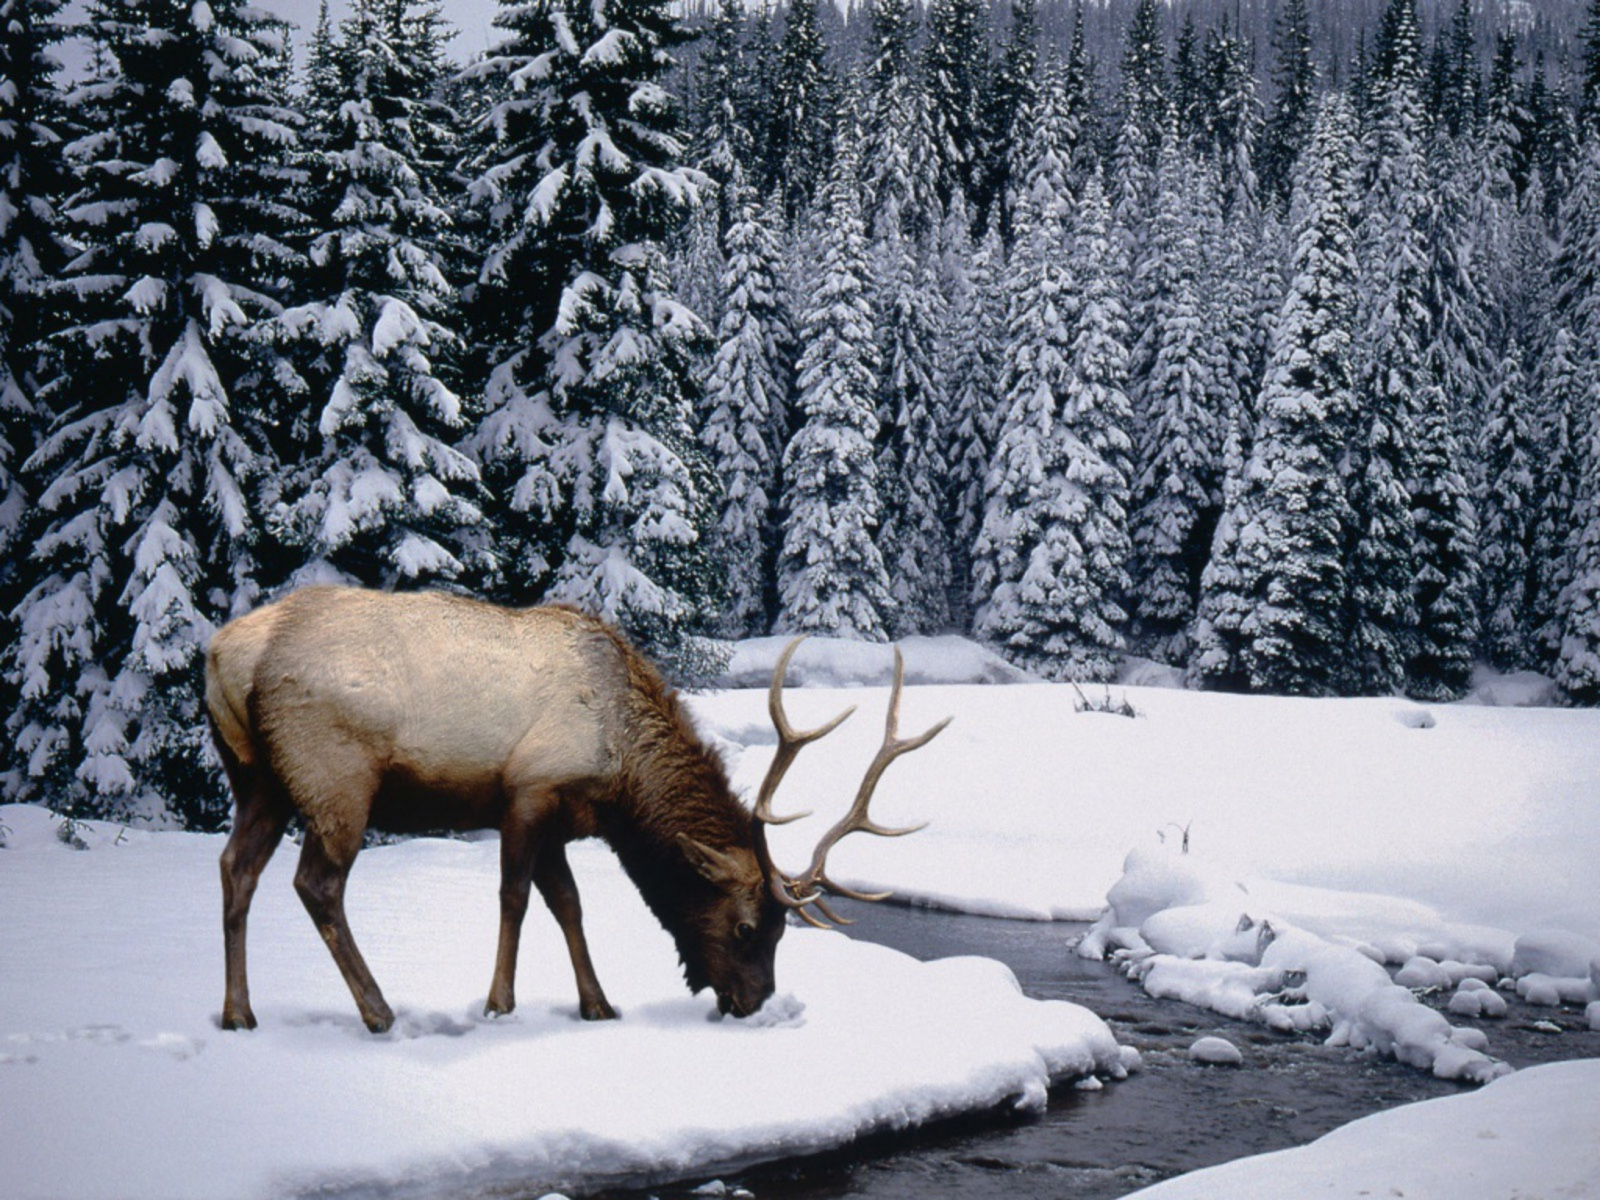 Cool   Wallpaper Horse Snow - winter-stag-wallpapers_1277_1024  Trends_100117.jpg